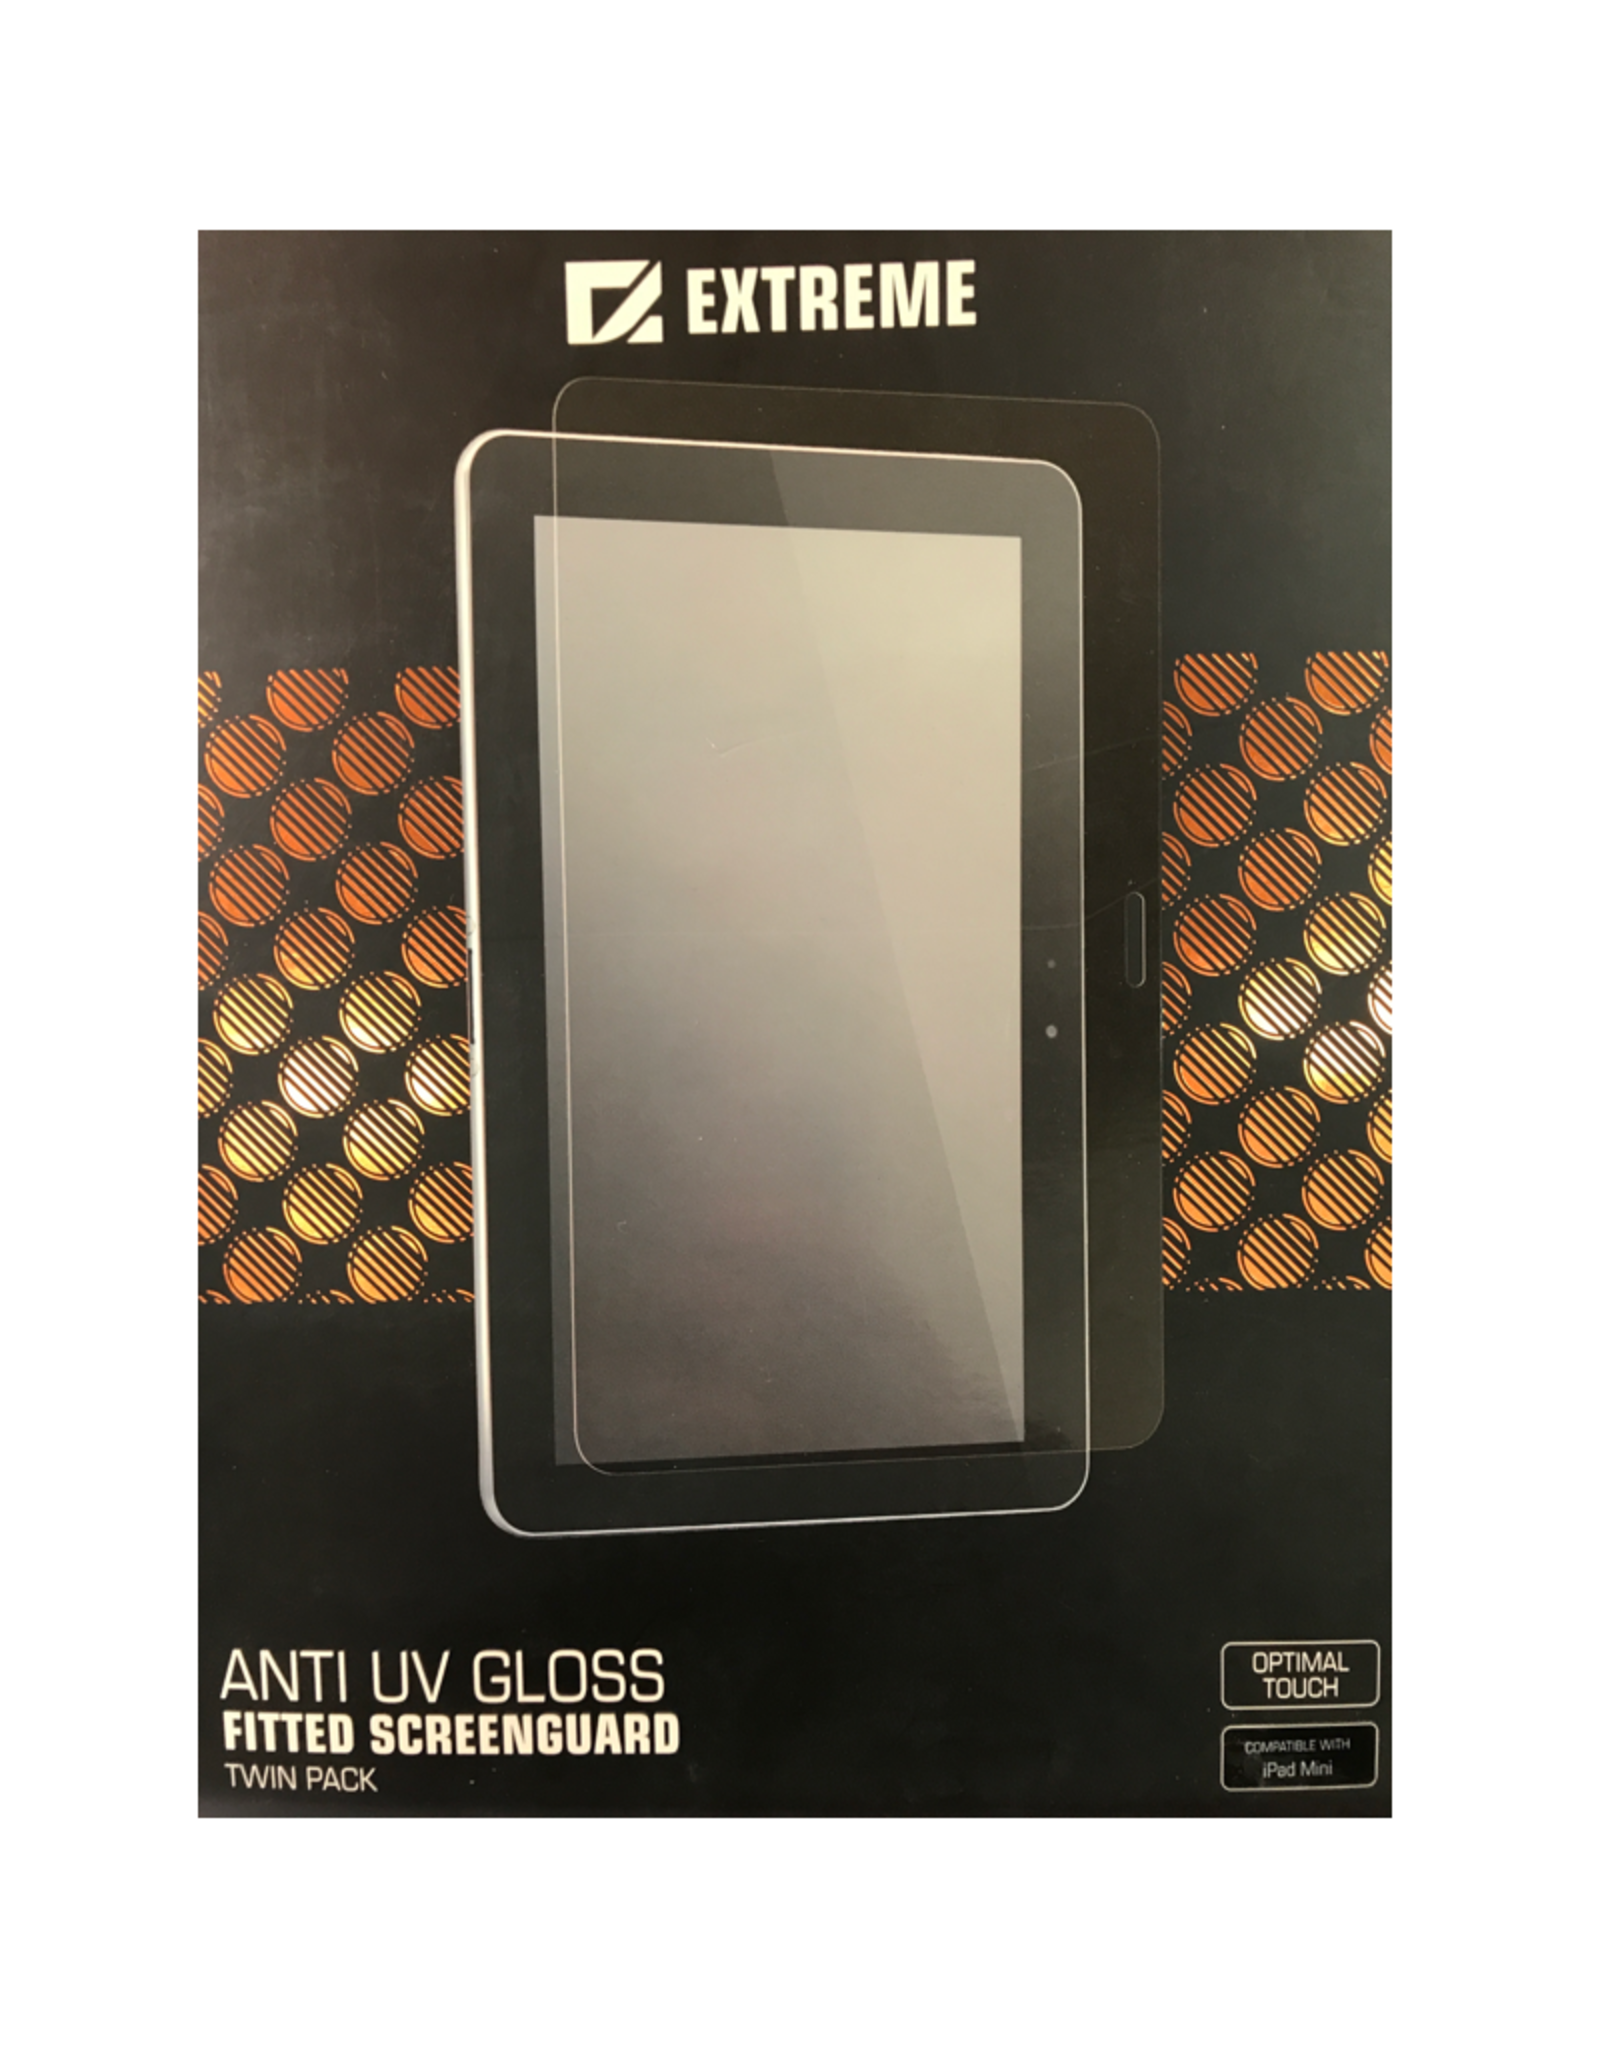 EFM Extreme Anti UV Gloss ScreenGuard to suit iPad mini EOL